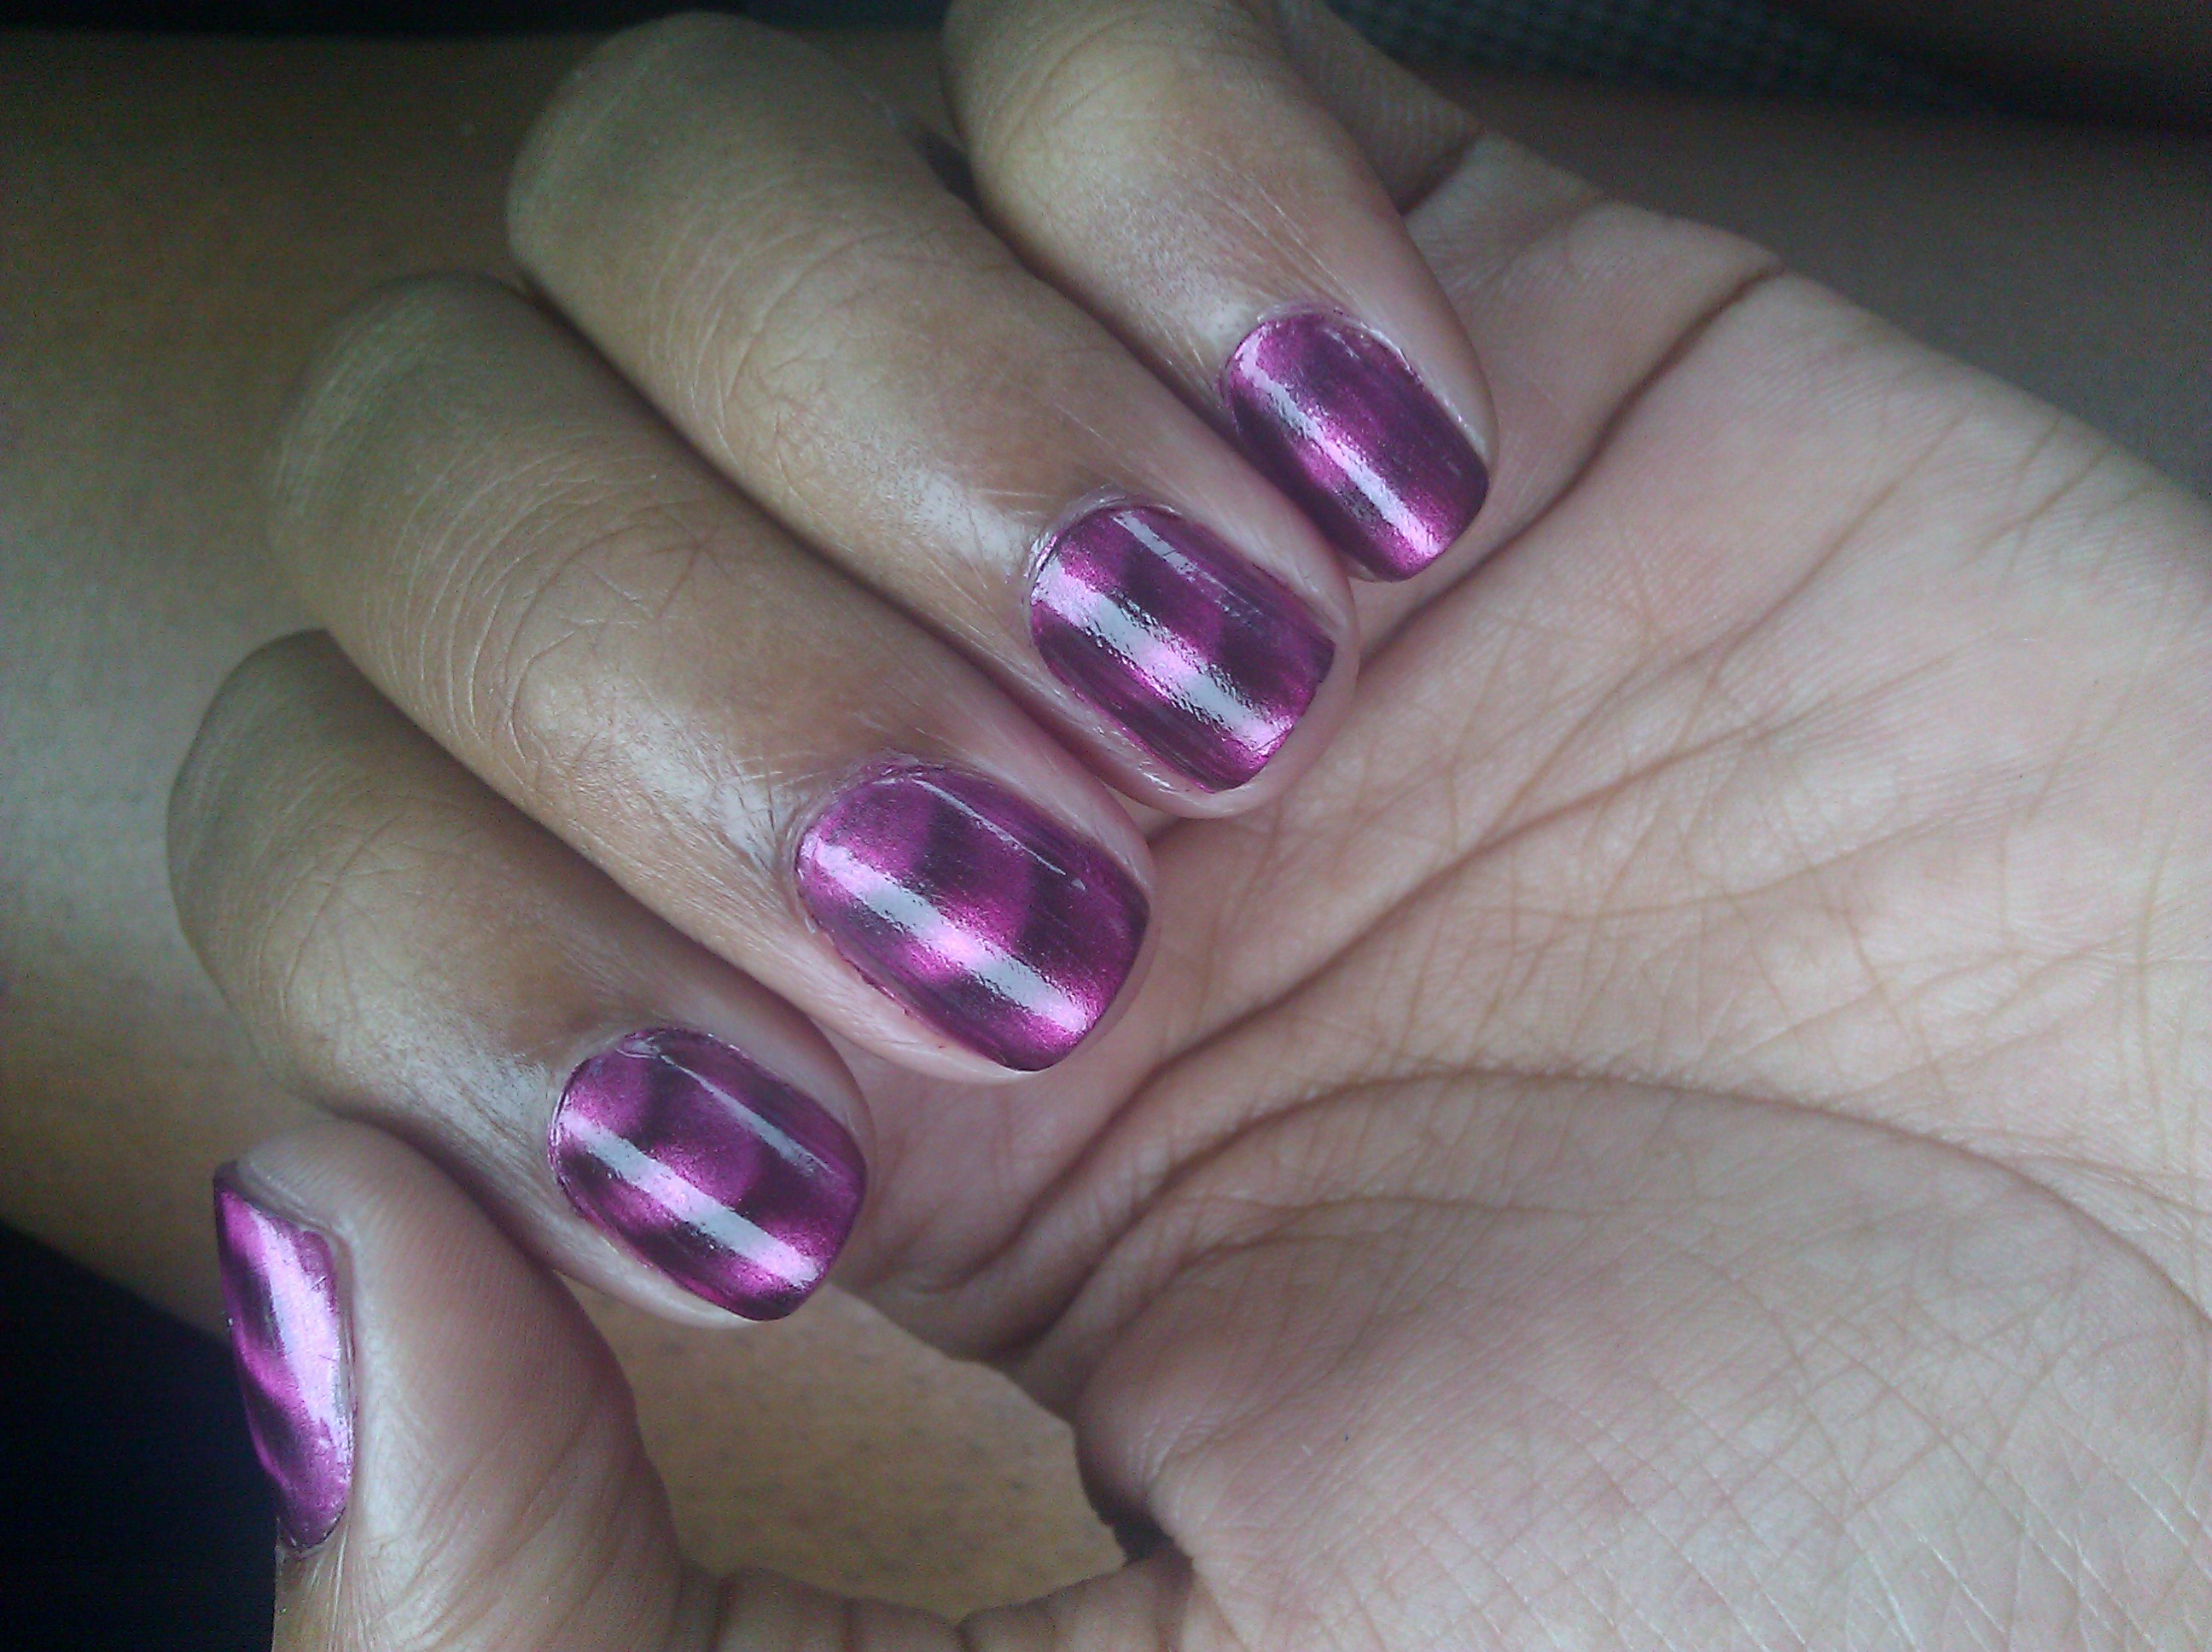 Sally Hansen Magnetic Nail Color Review | The Savvy Housewife